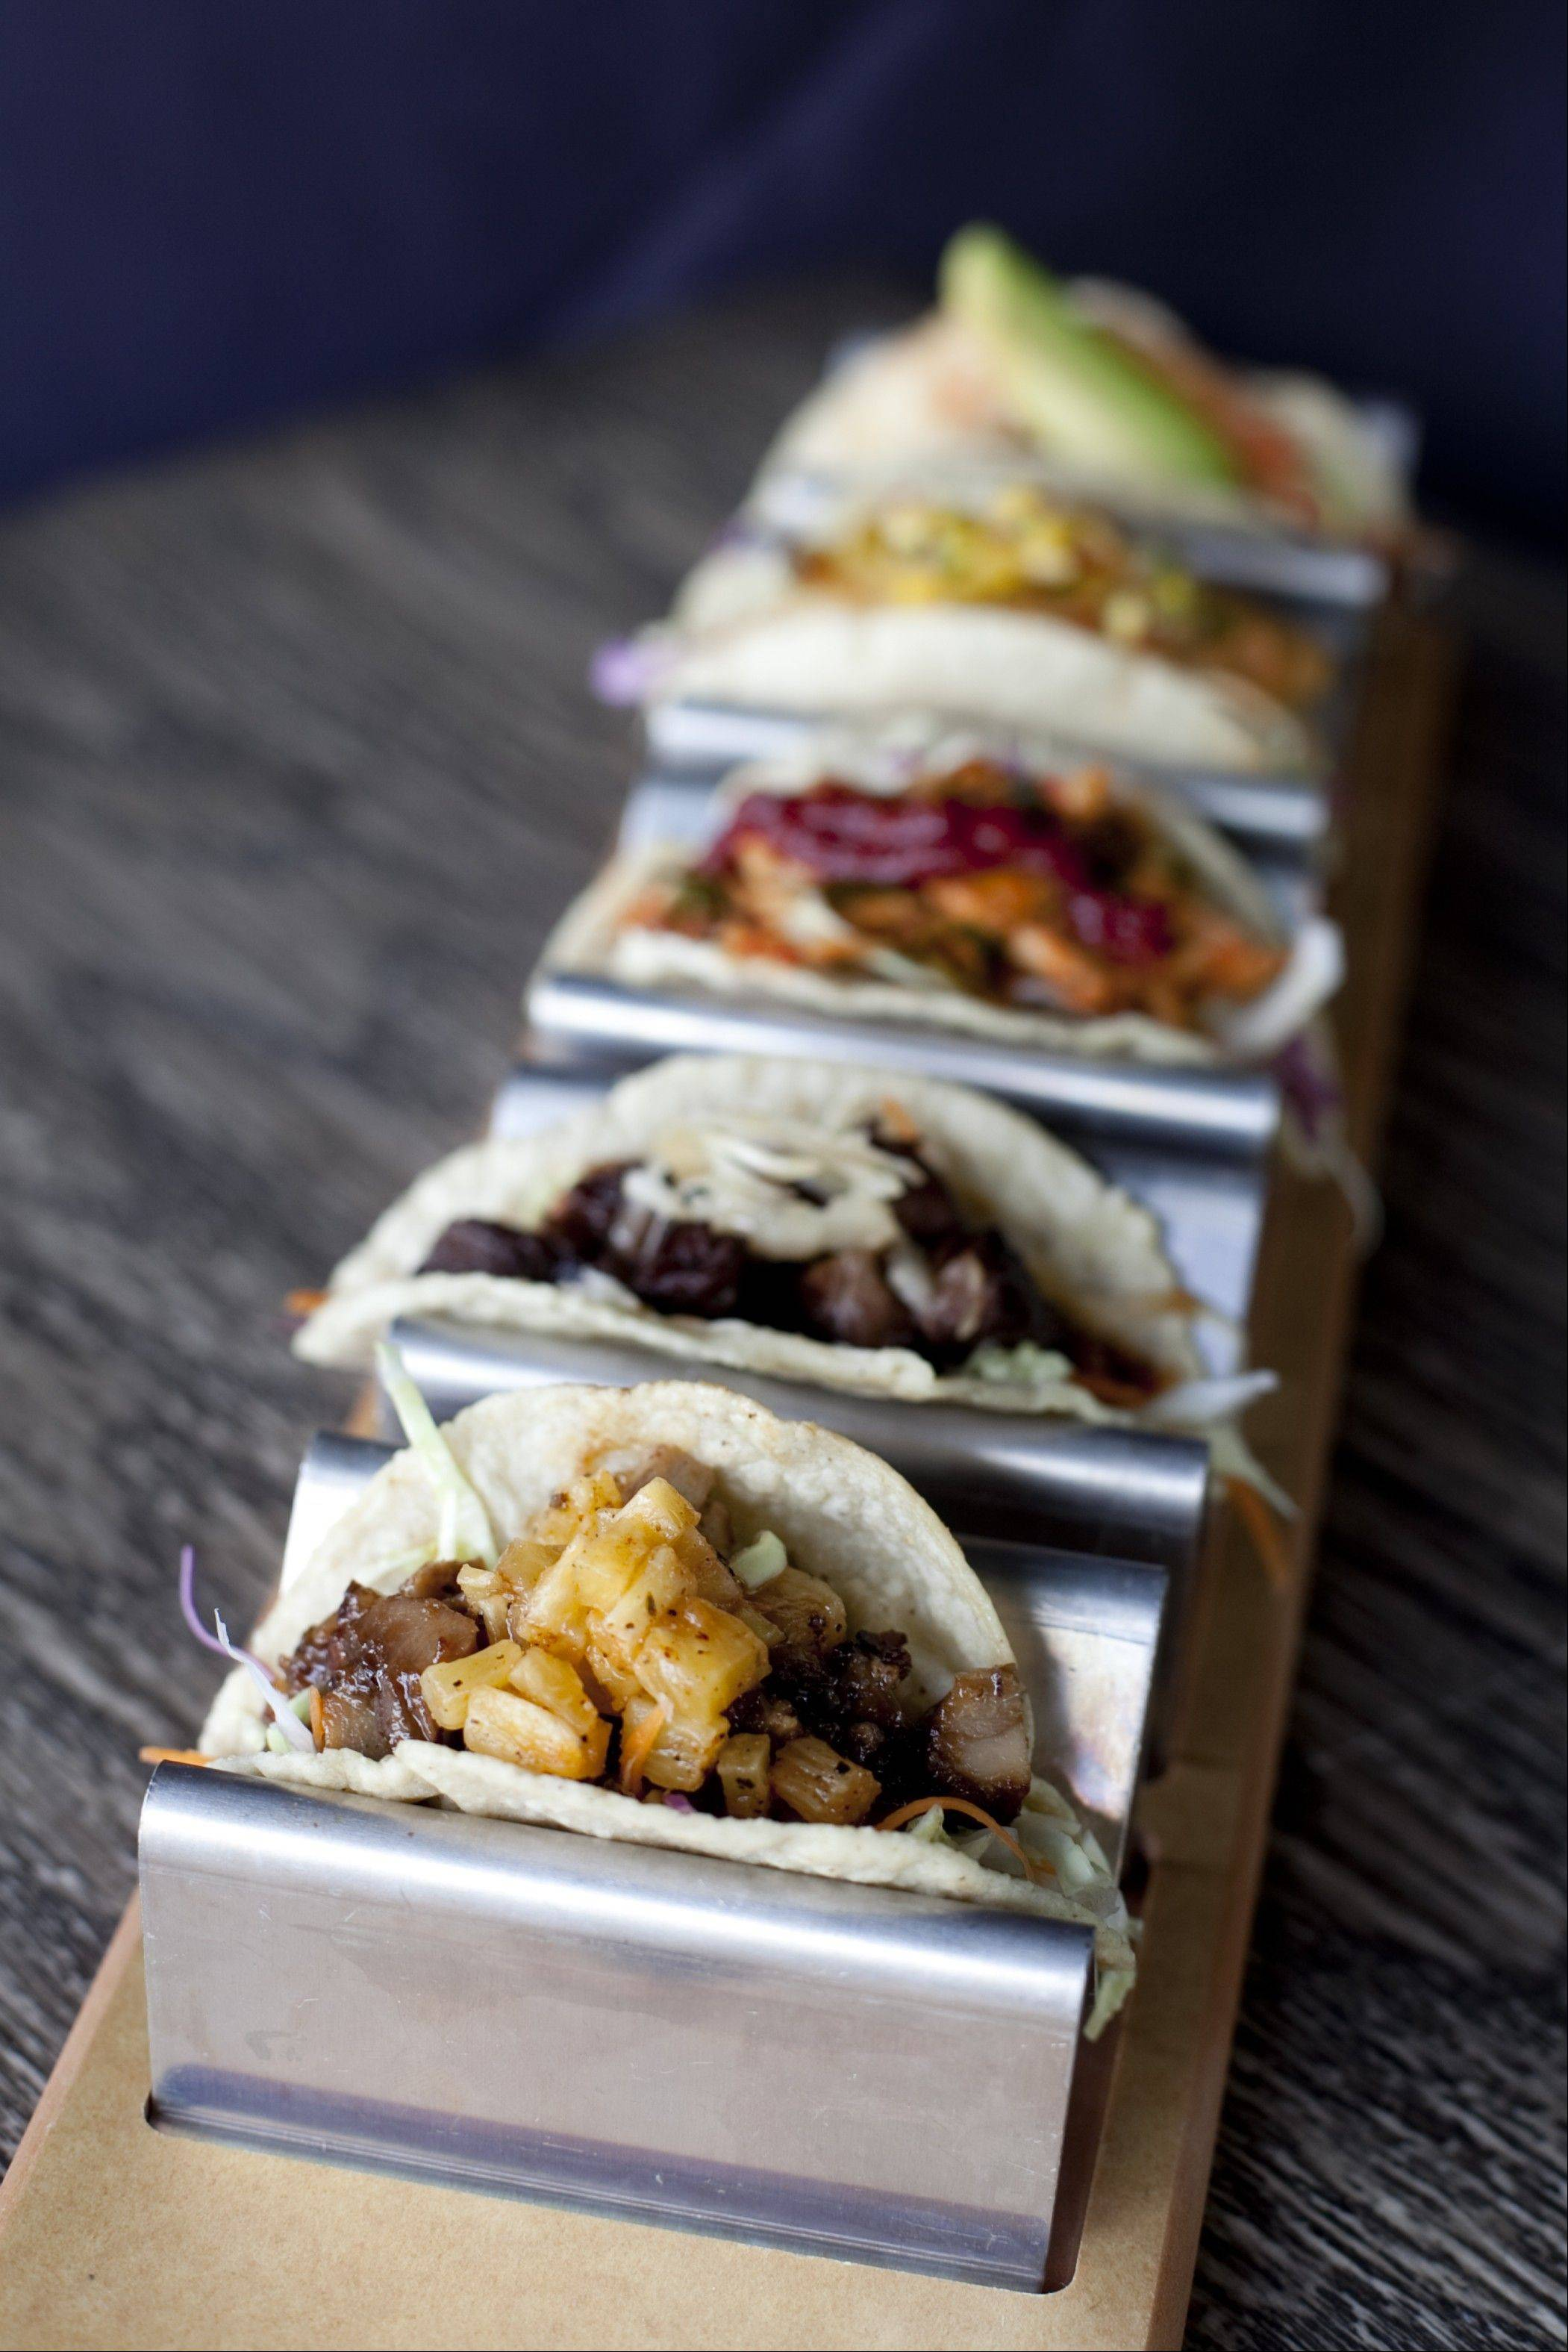 Celebrate Cinco de Mayo with $1 tacos at Tokio Pub.